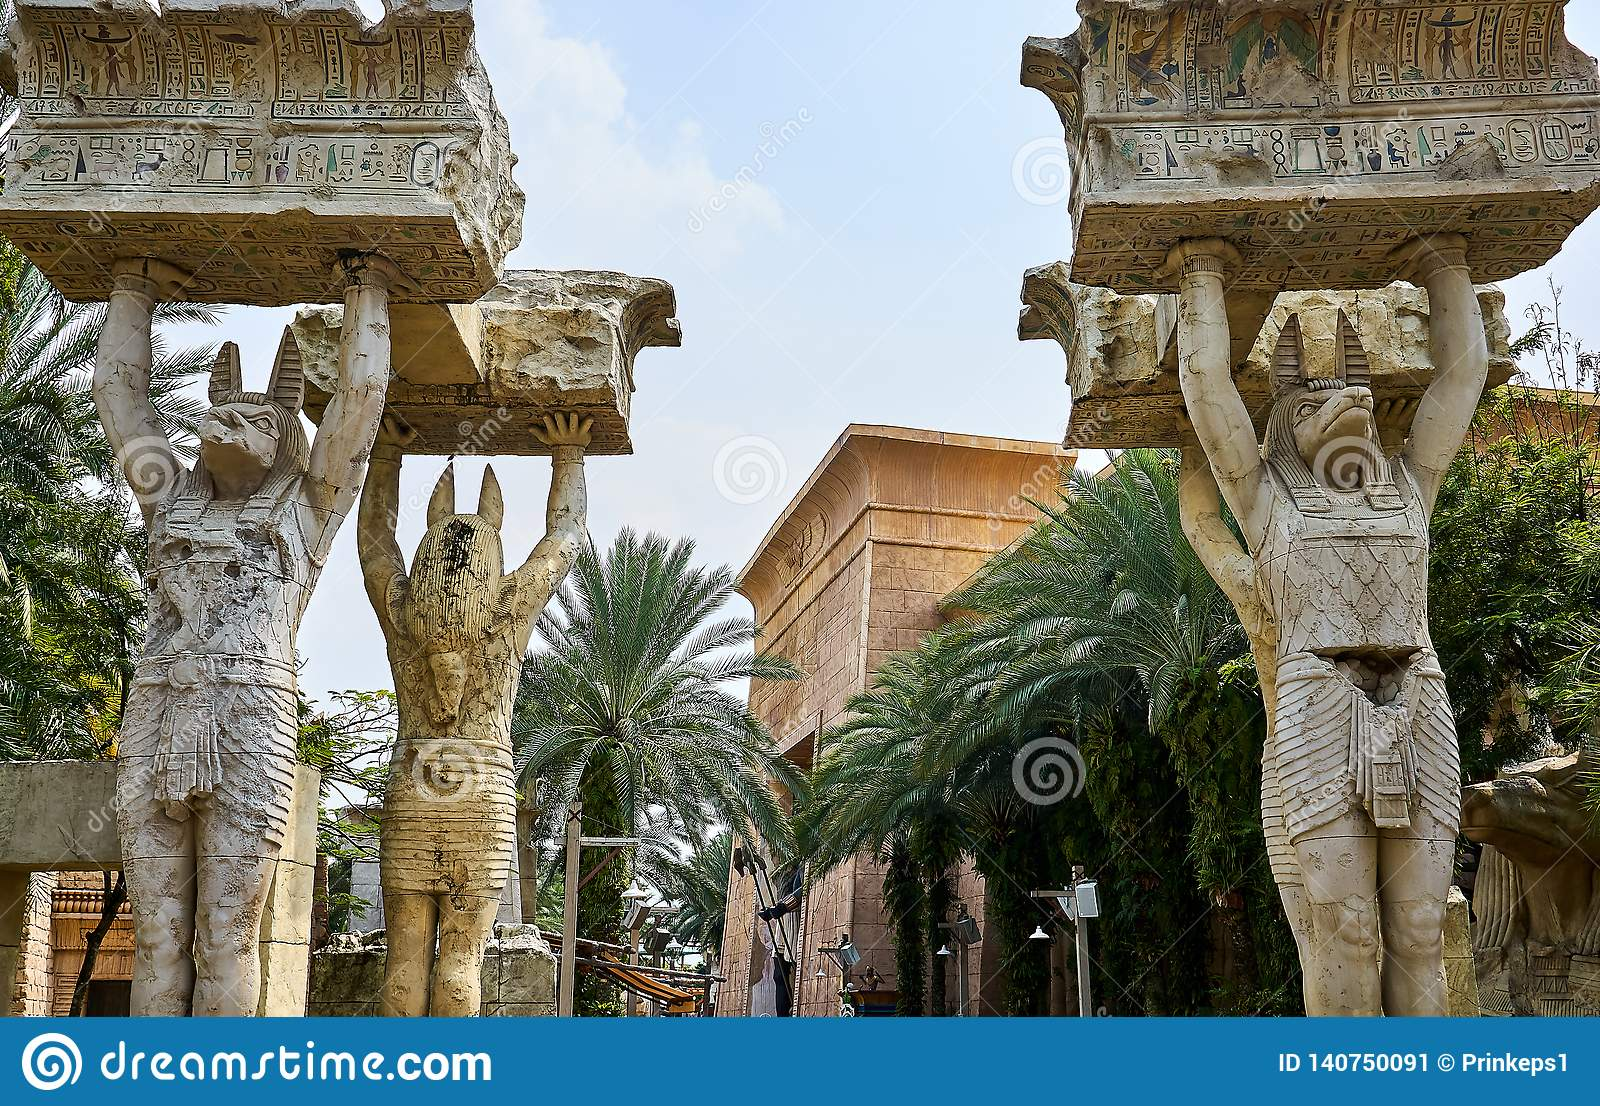 Egyptian statues lifting big boulders written with hieroglyphs at Unversal Studios Singapore